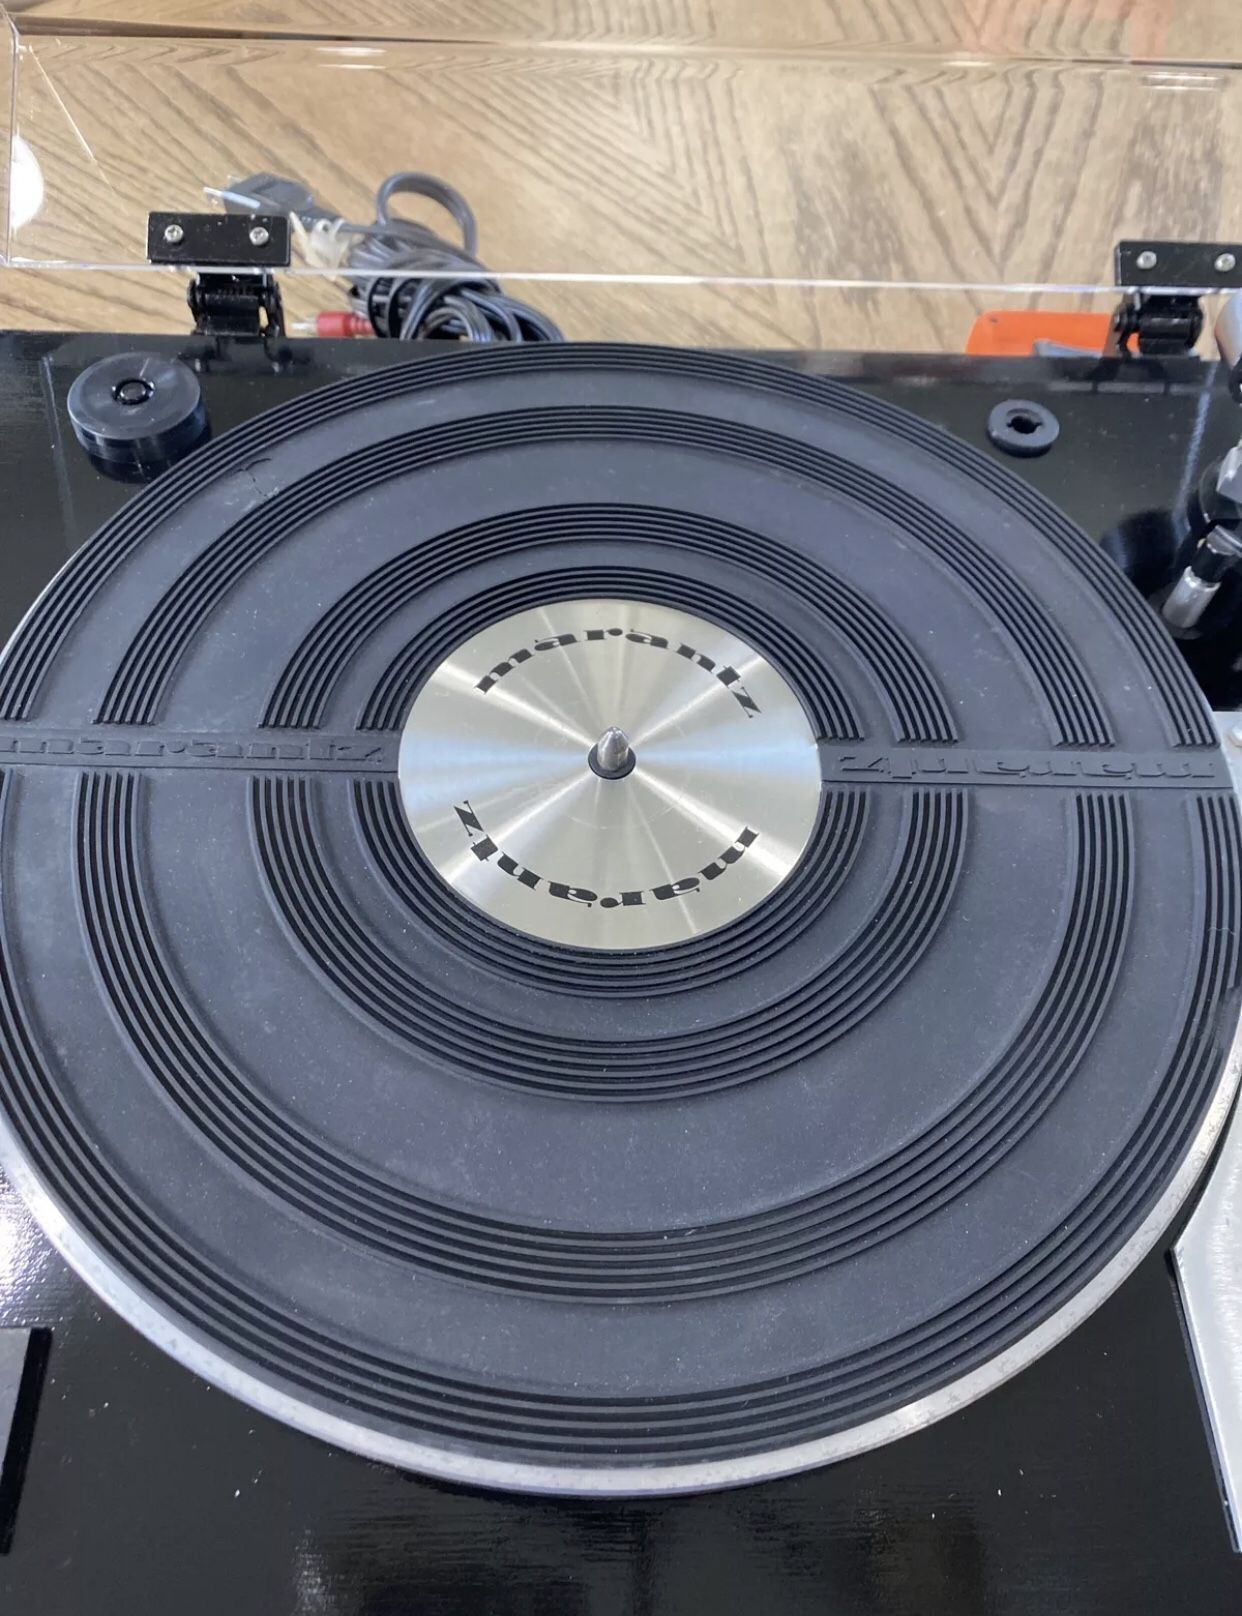 Marantz 6100 Turntable Excellent Condition Serviced Recently Sounds Amazing!